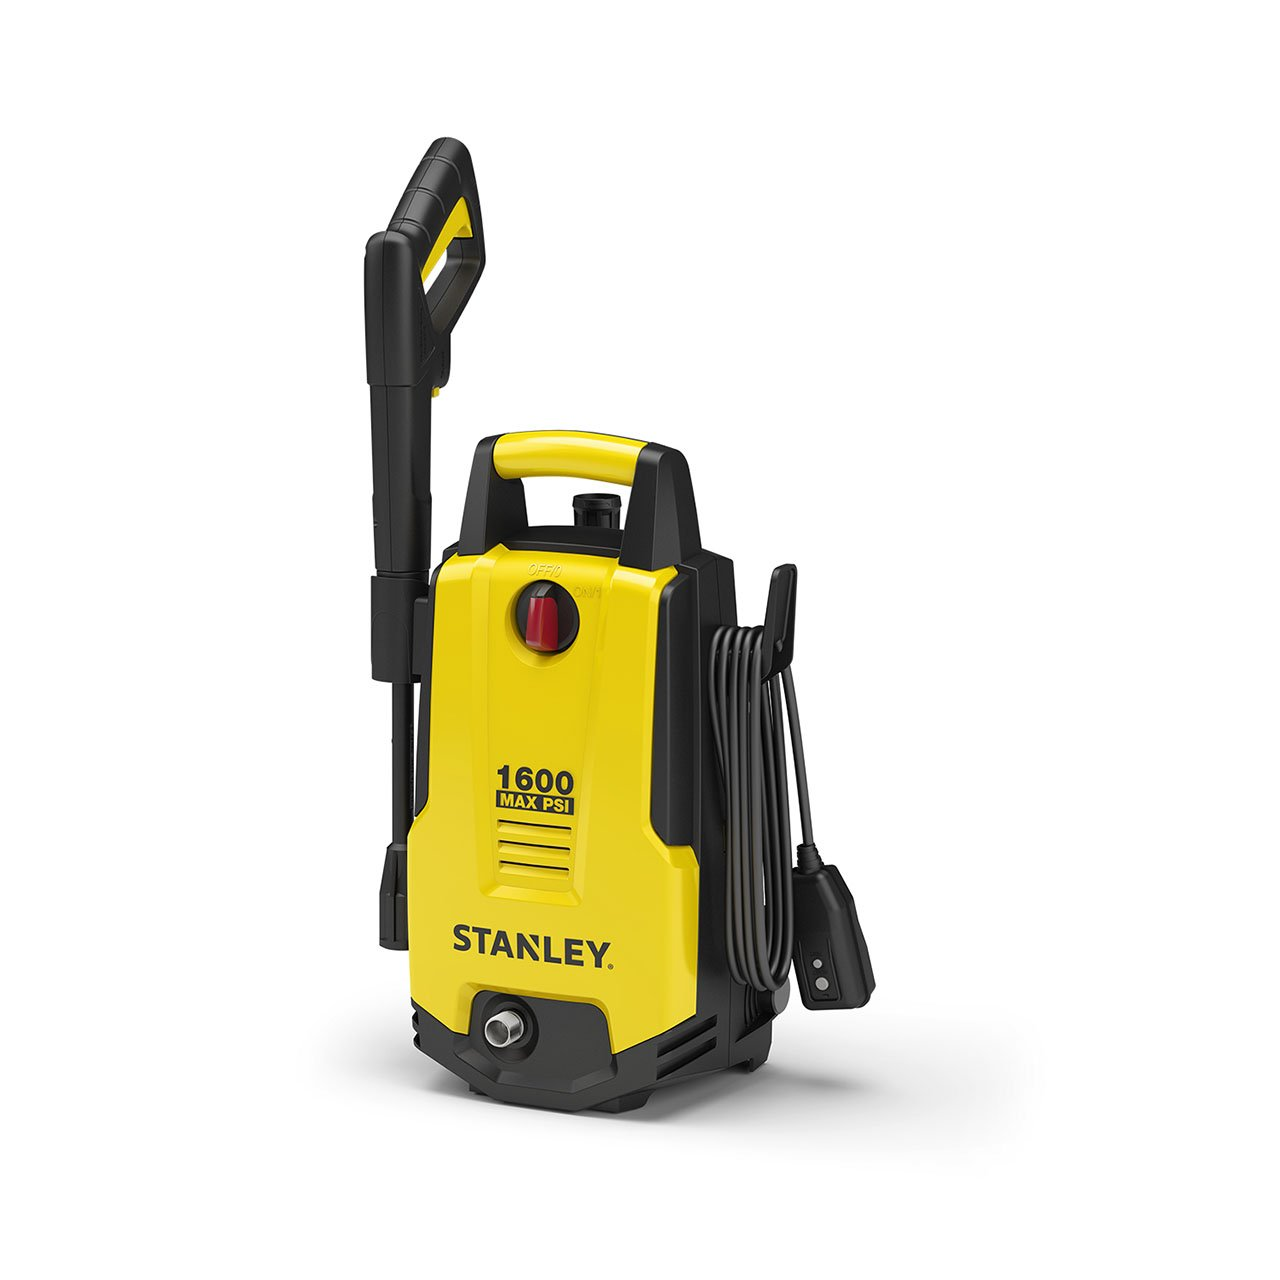 Stanley SHP1600 Electric Power Washer, 1600 PSI, Yellow by Stanley